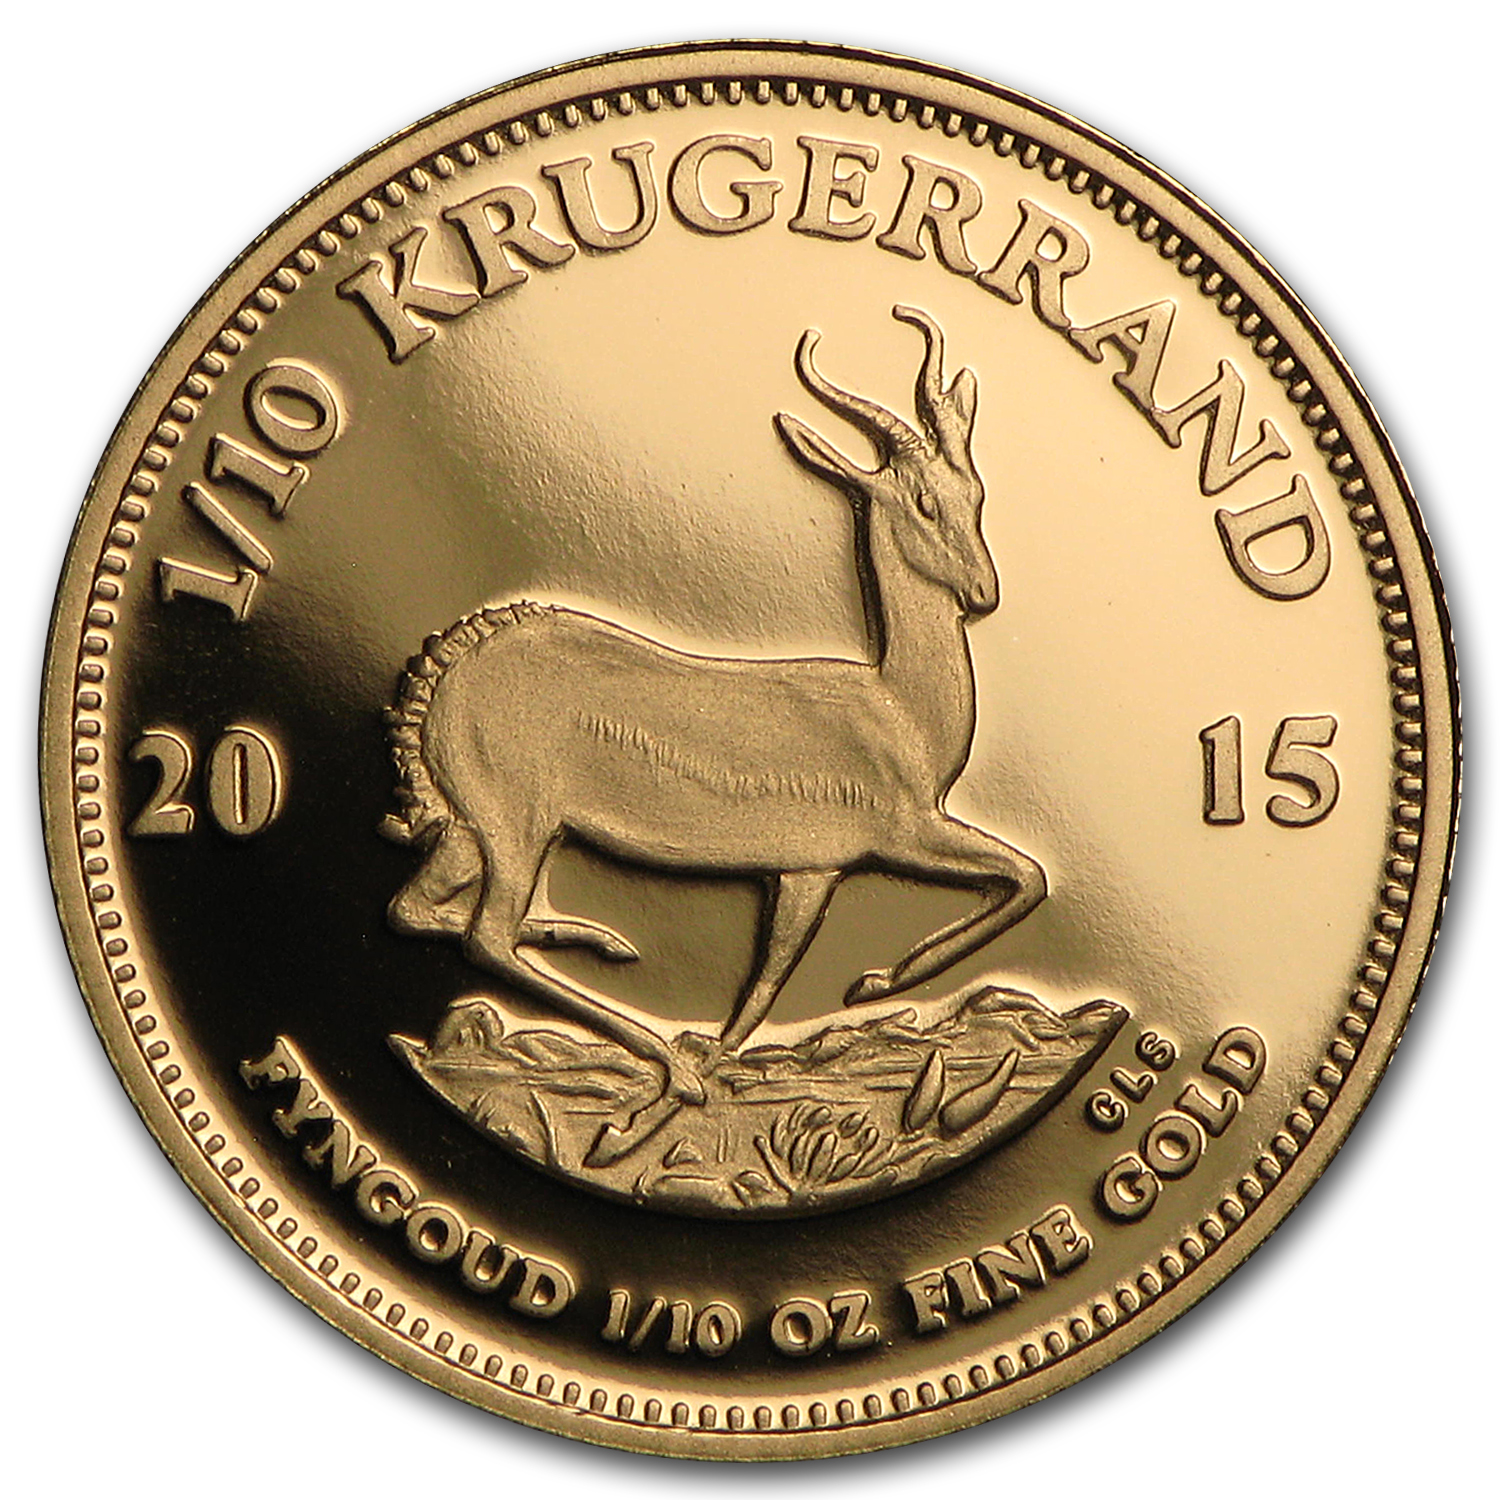 2015 South Africa 1/10 oz Proof Gold Krugerrand